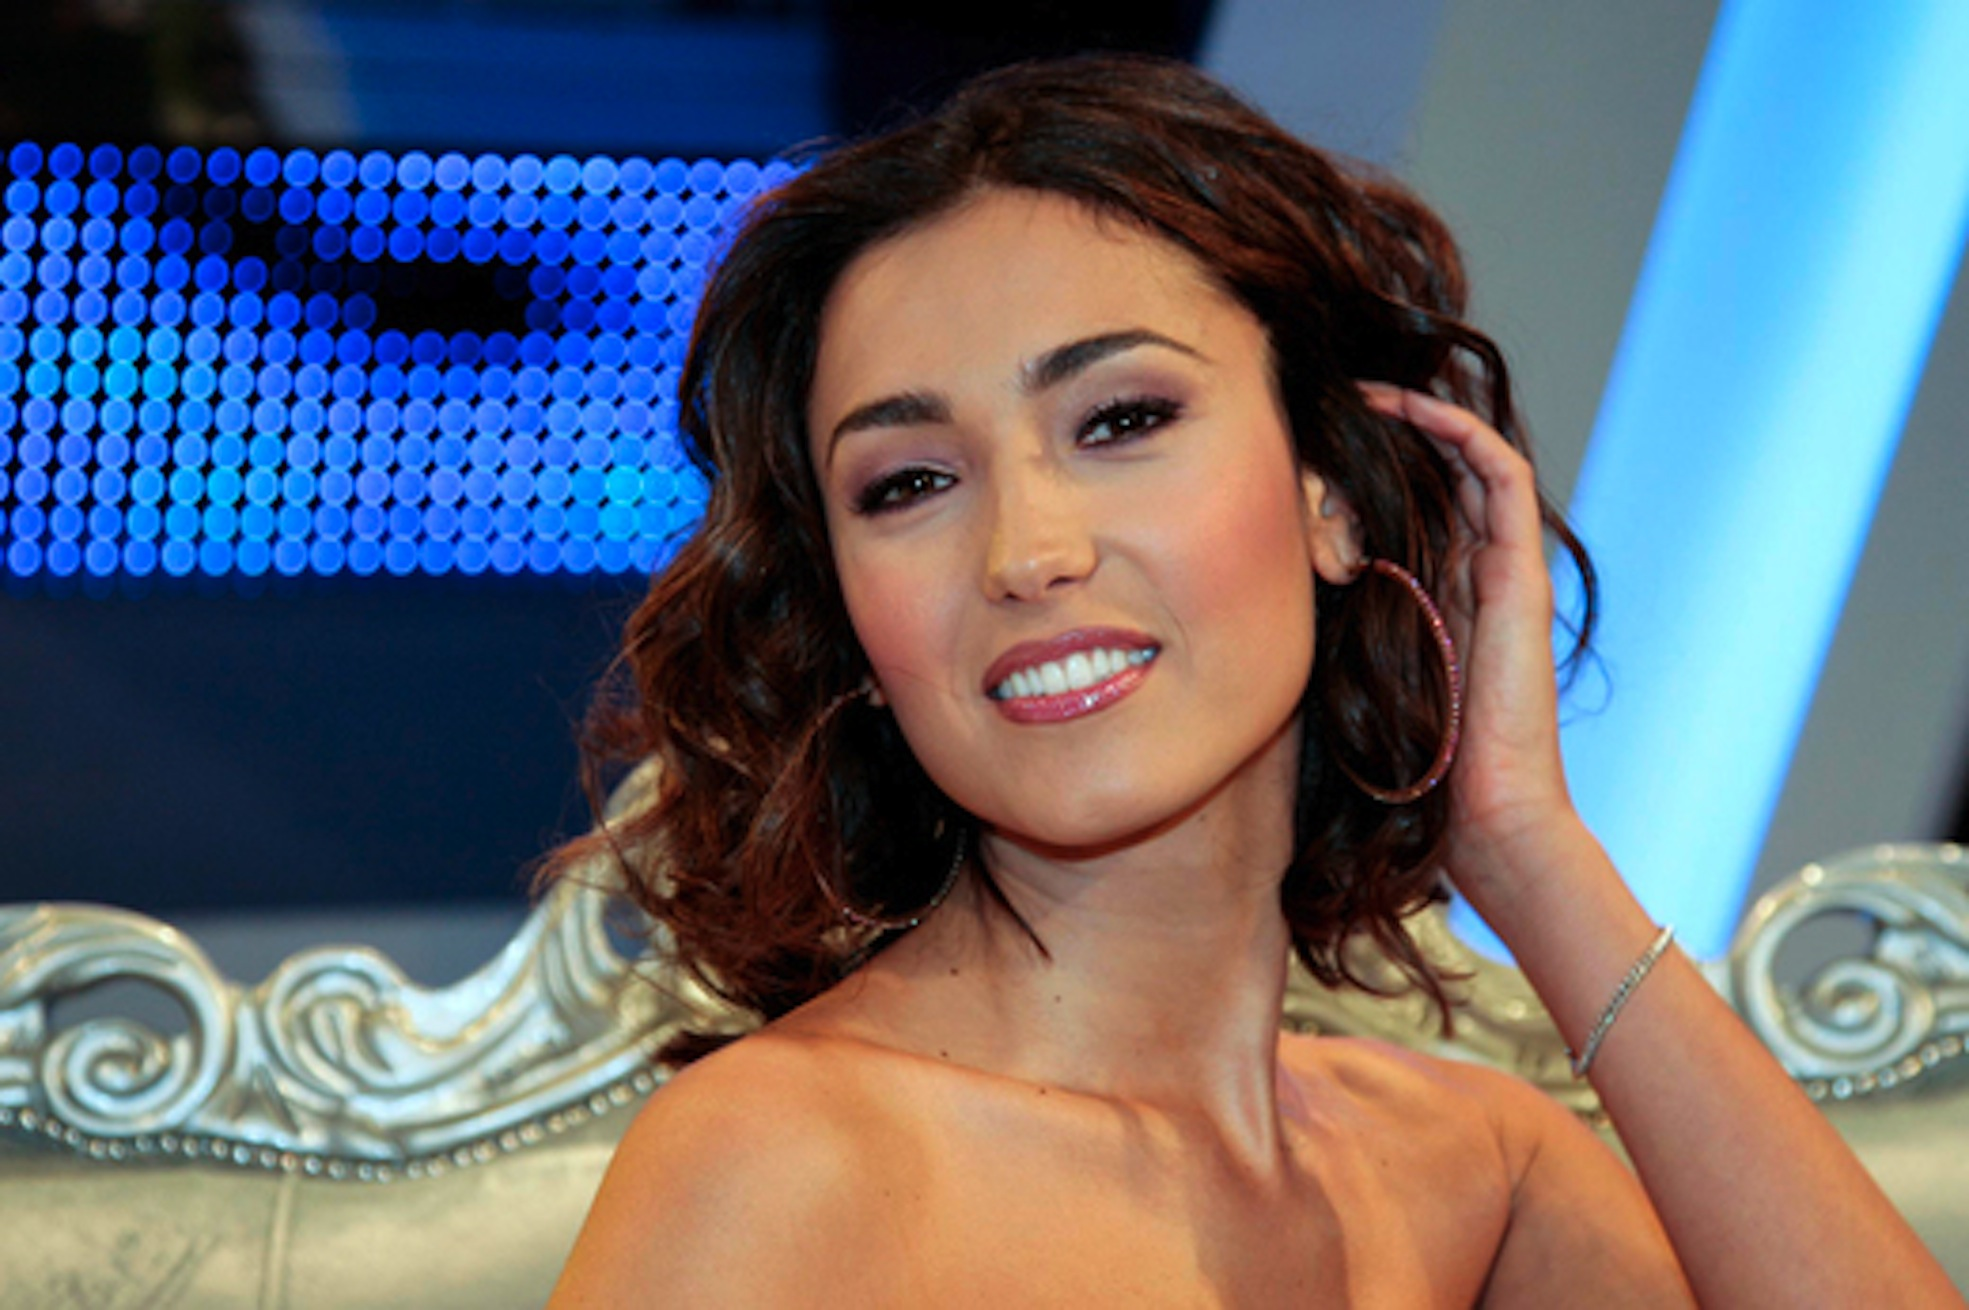 management caterina balivo